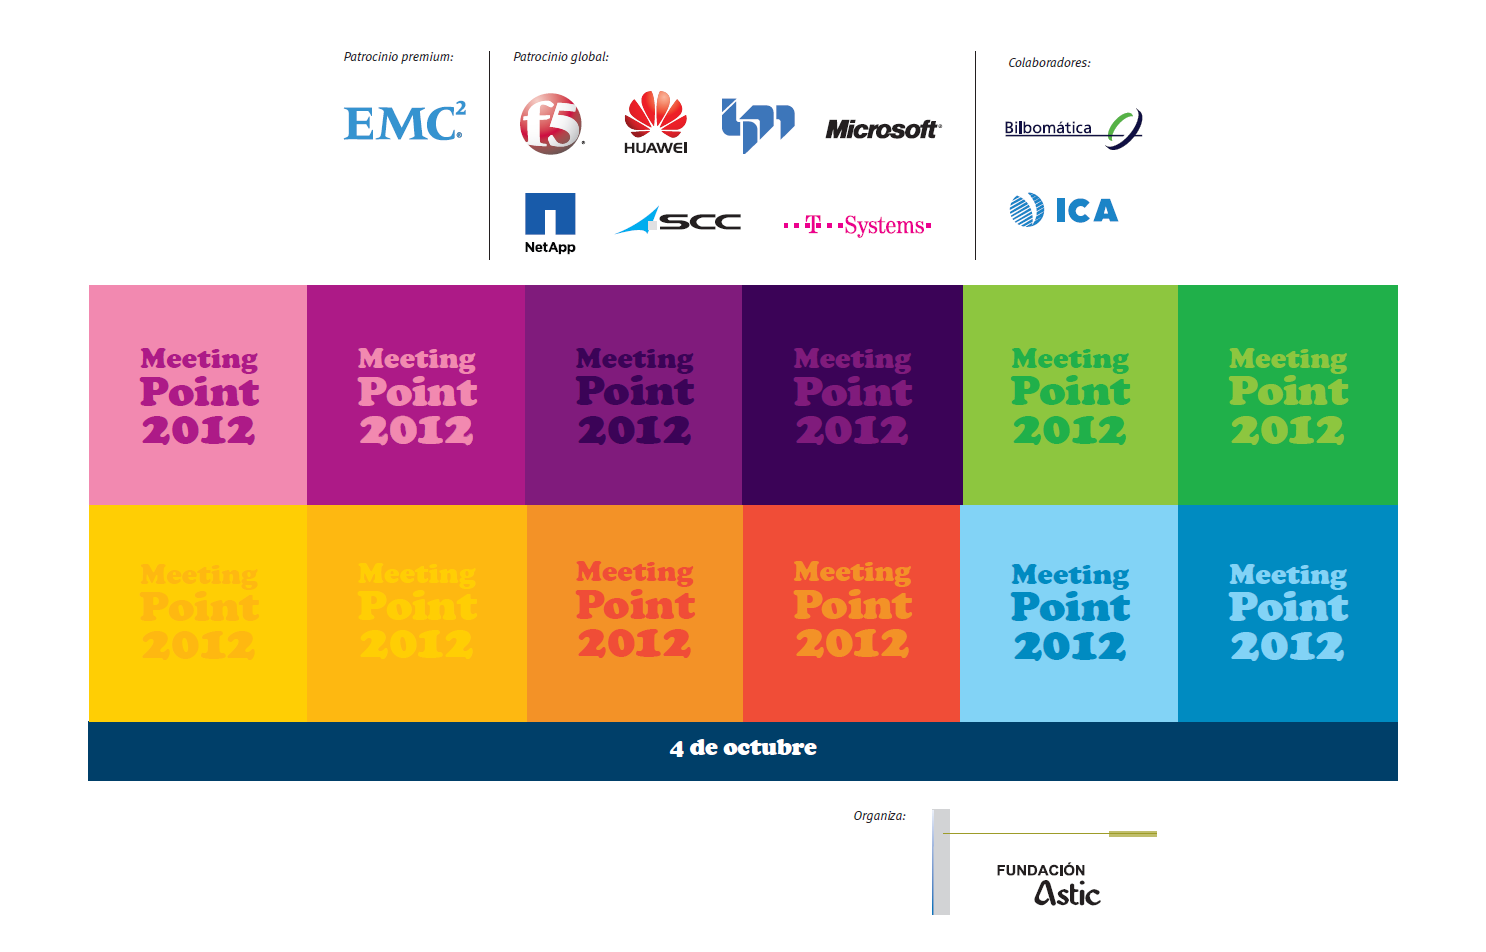 Meeting Point 2012